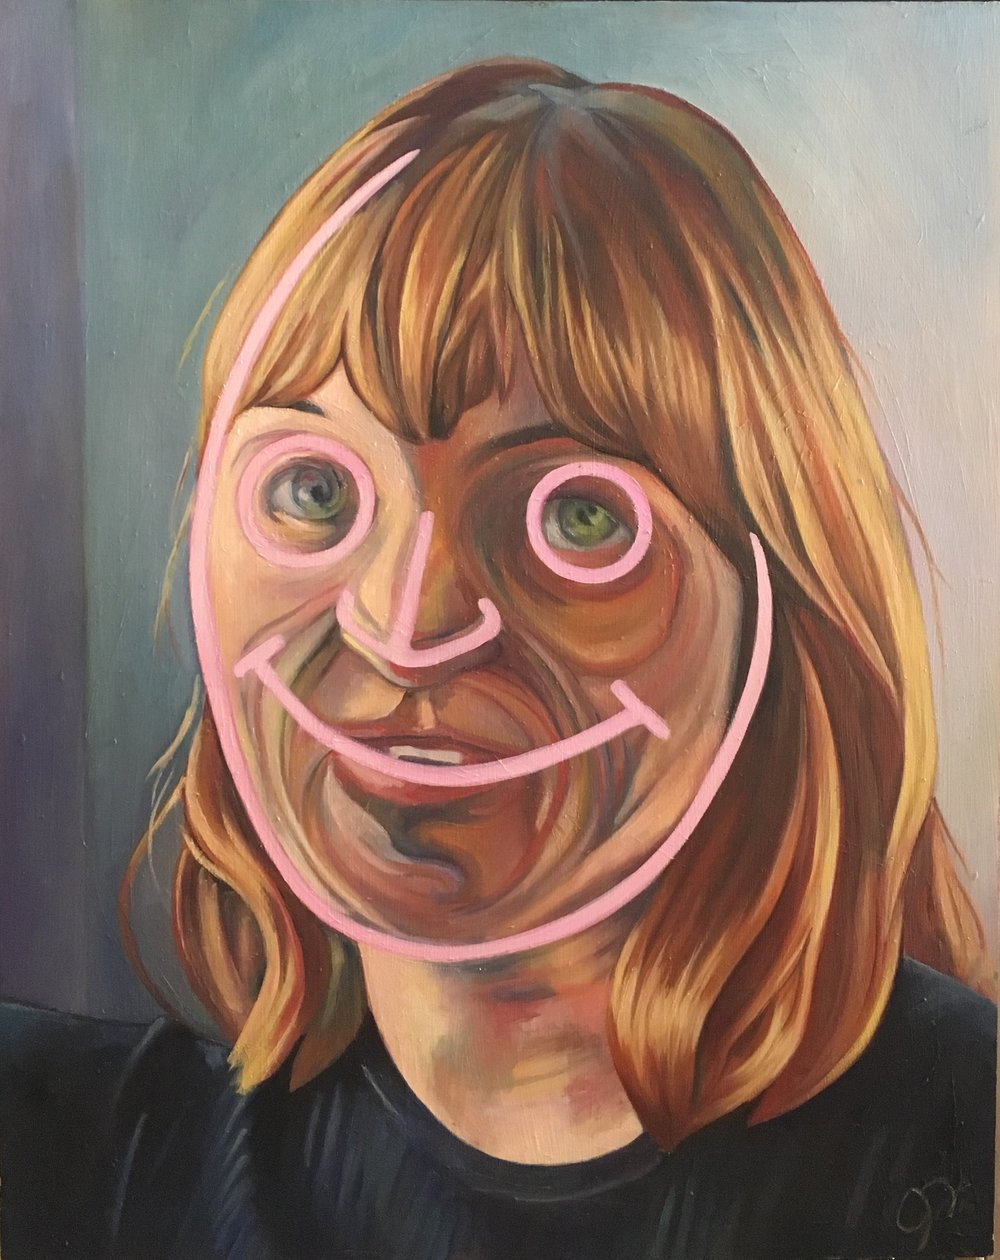 """Smiling Faces Sometimes"" by Julia Davis, oil on panel, 24x30in, 2016, $800"